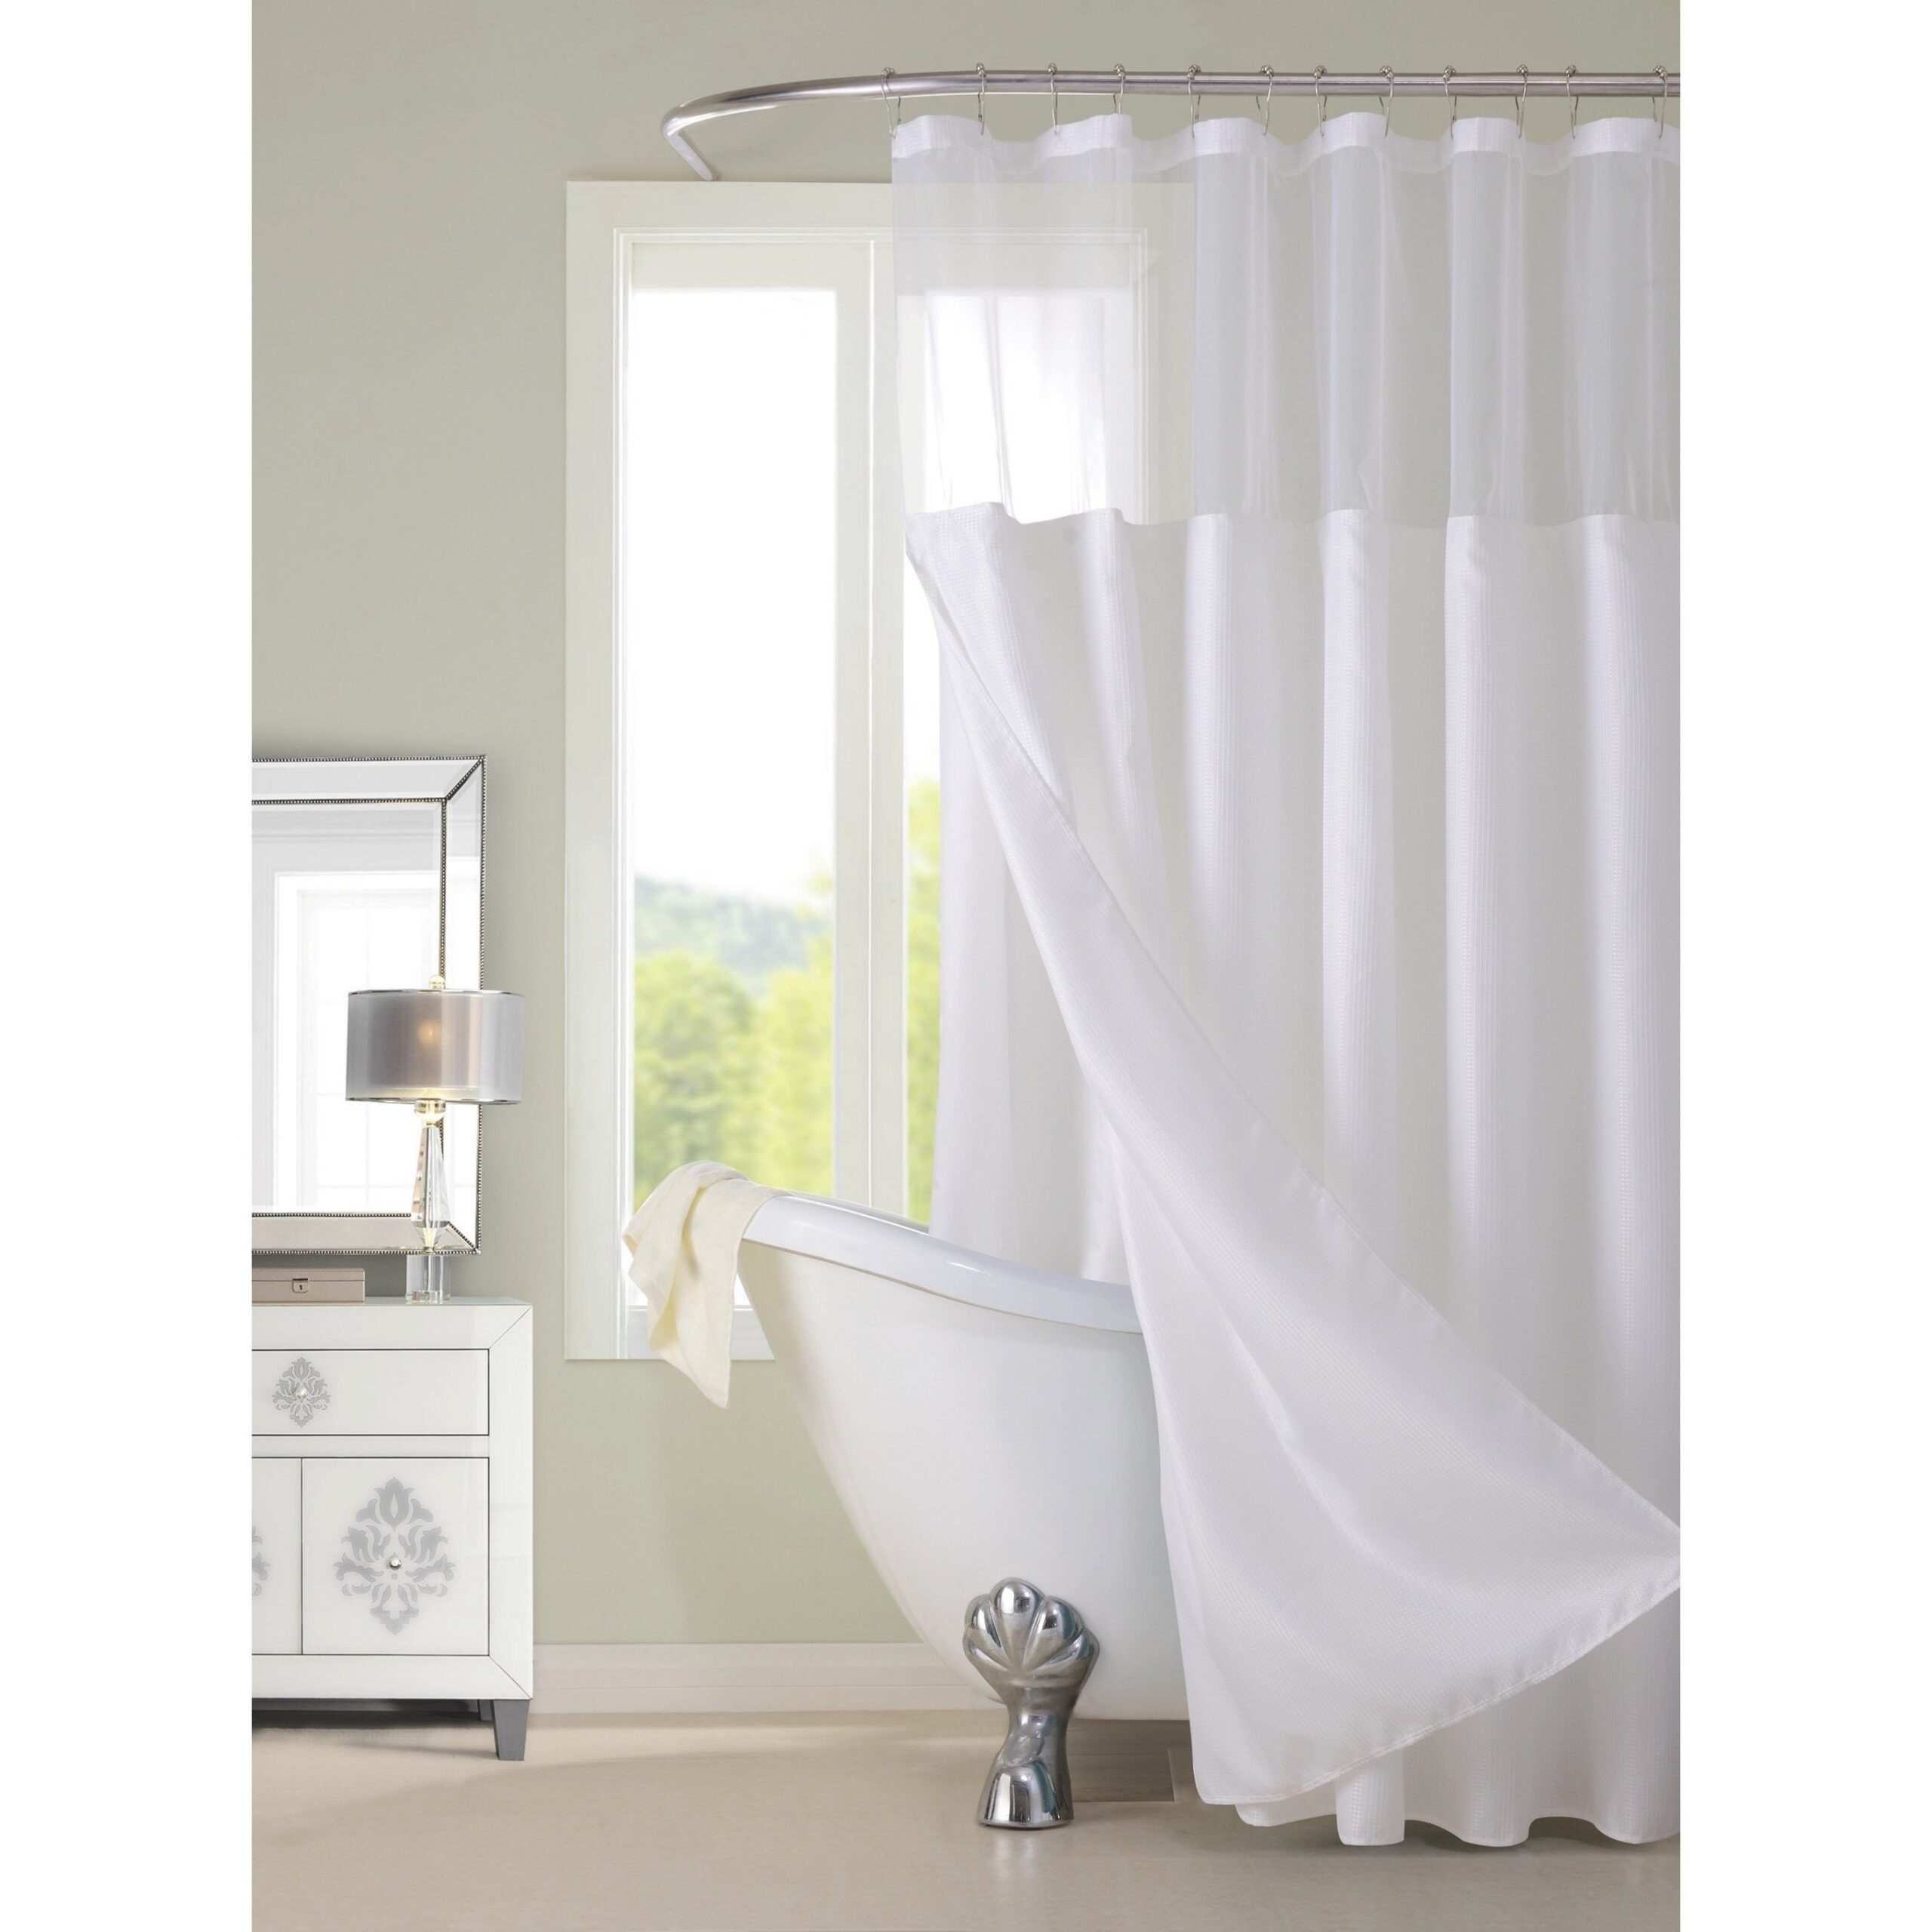 Gracewood Hollow Asimov Hotel Shower Curtain With with 84 Inch Shower Curtain